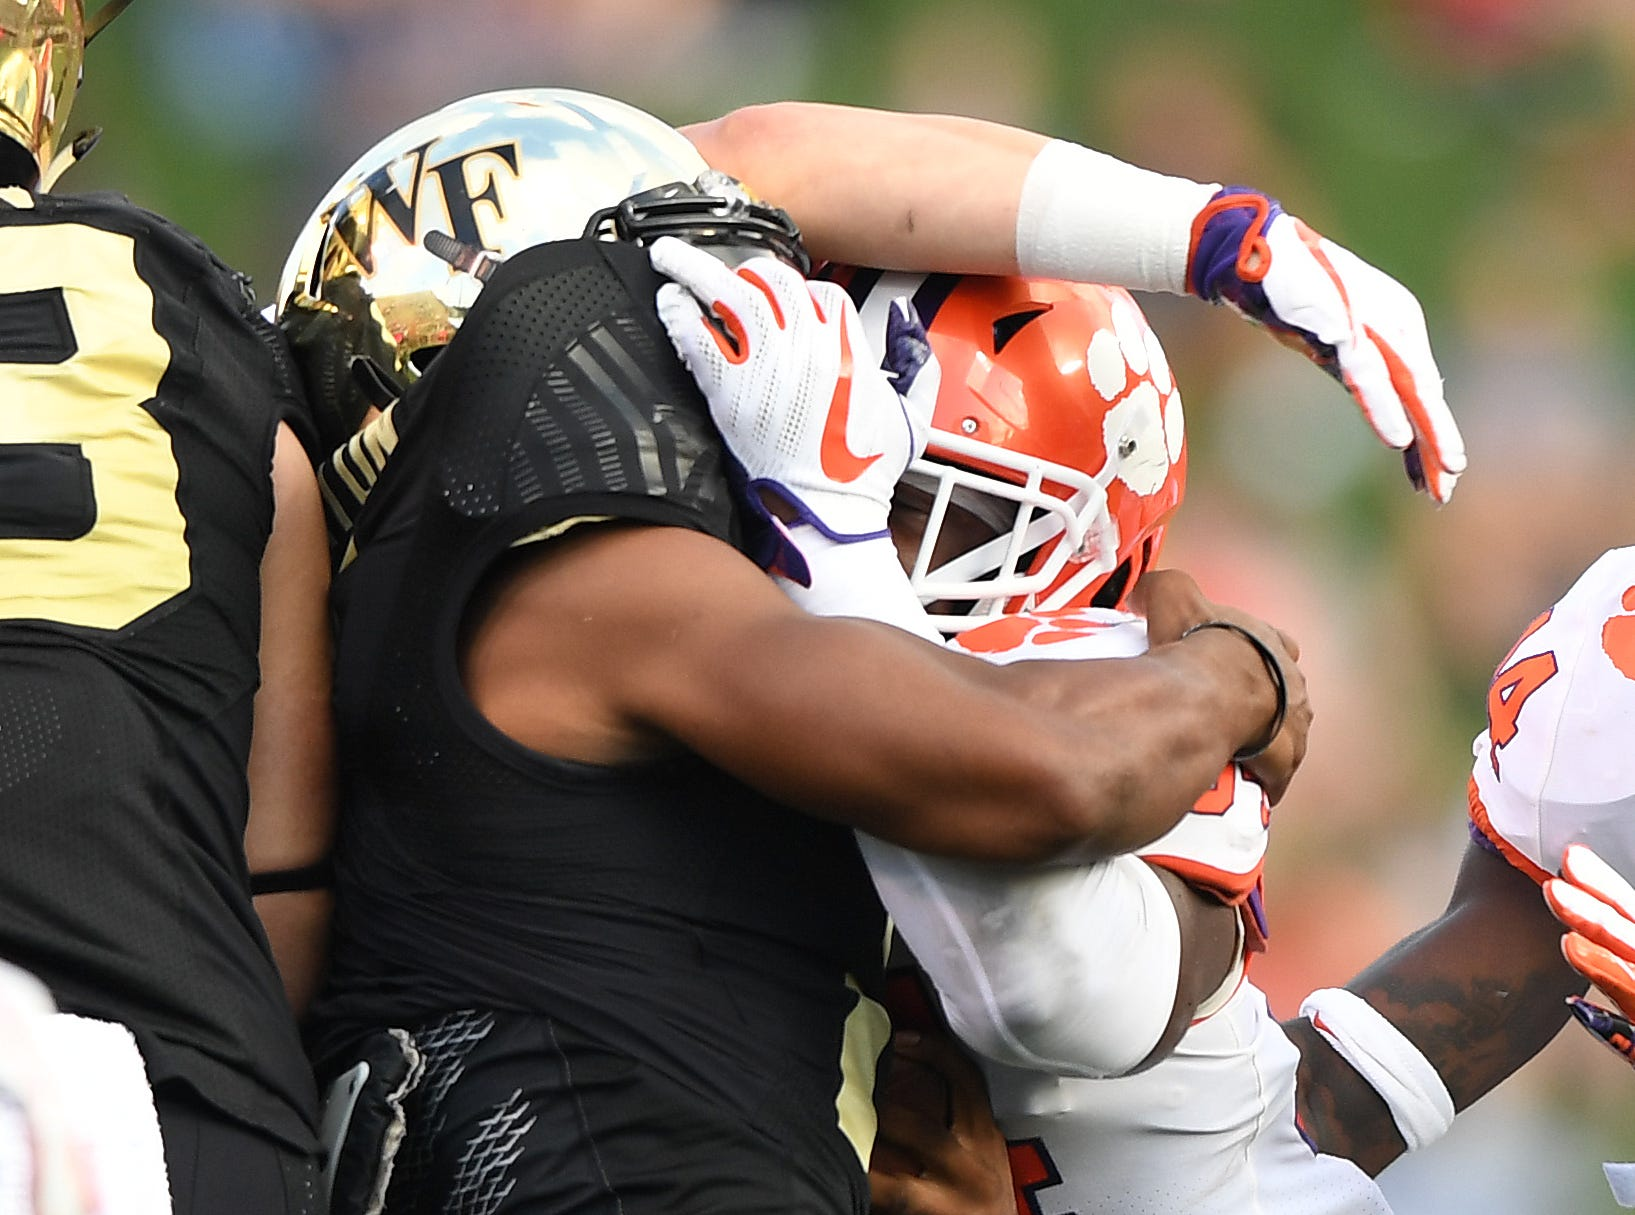 Clemson linebacker Kendall Joseph (34) brings down Wake Forest quarterback Kendall Hinton (2) during the 3rd quarter at BB&T Field in Winston Salem, N.C. Saturday, October 6, 2018.